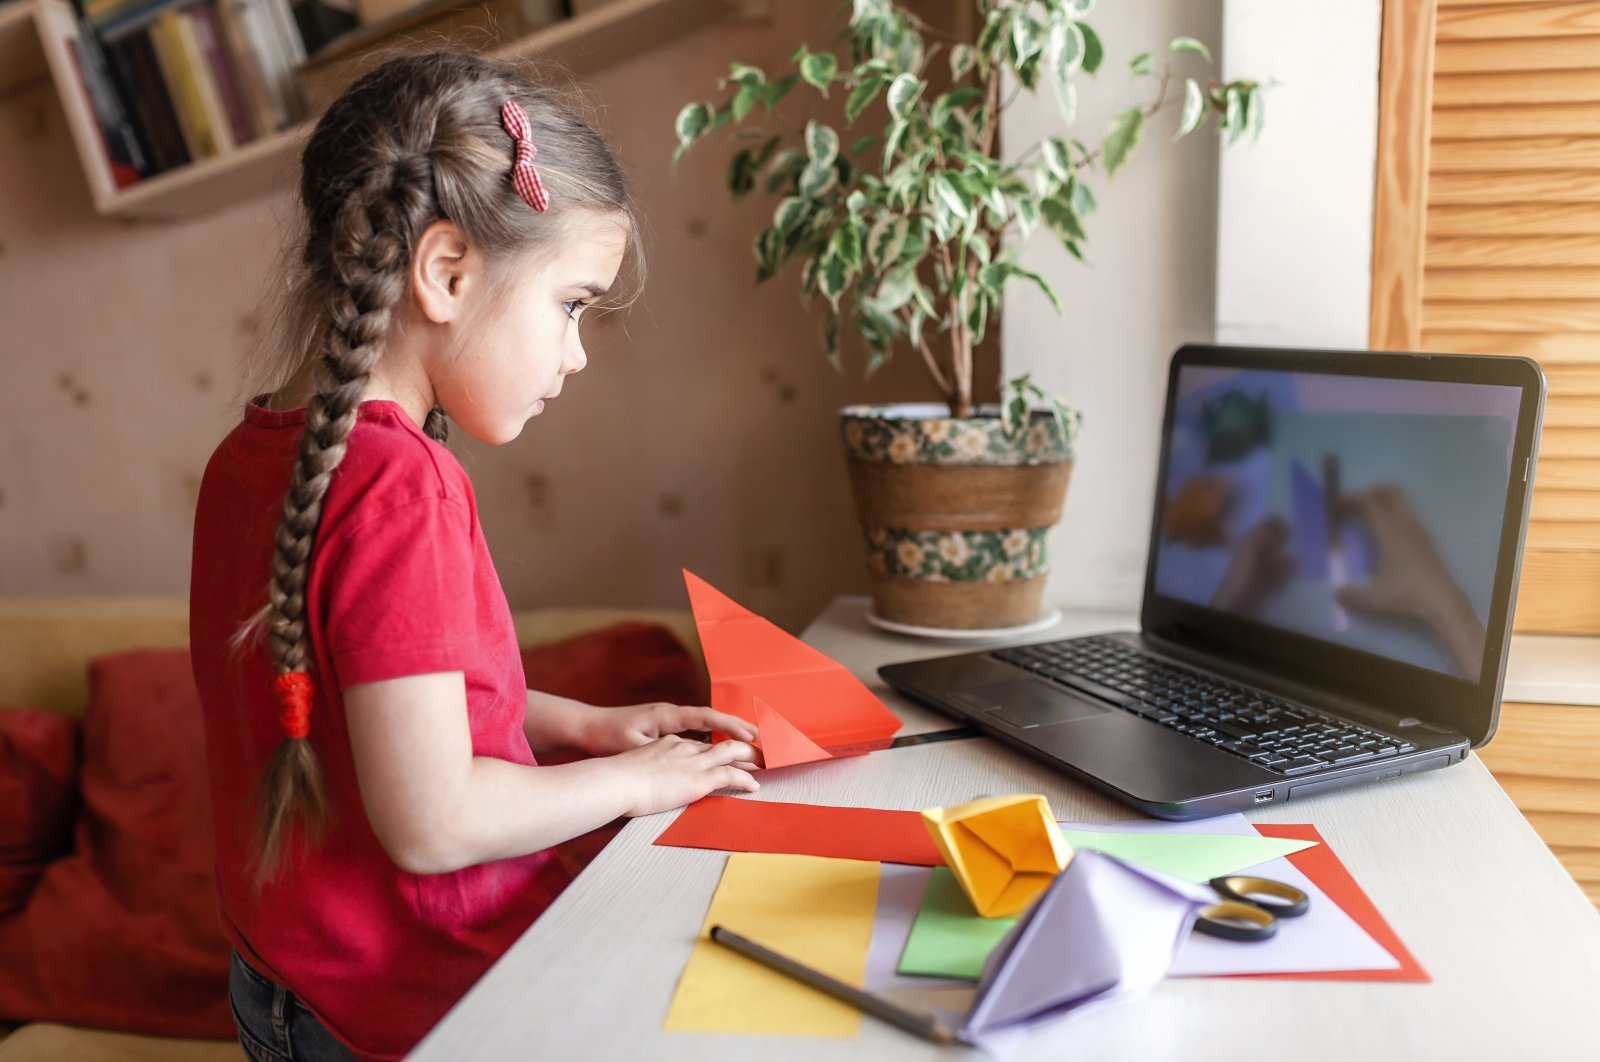 A young student uses colorful paper to create origami fish during an online workshop for distance learning. (iStock Photo)